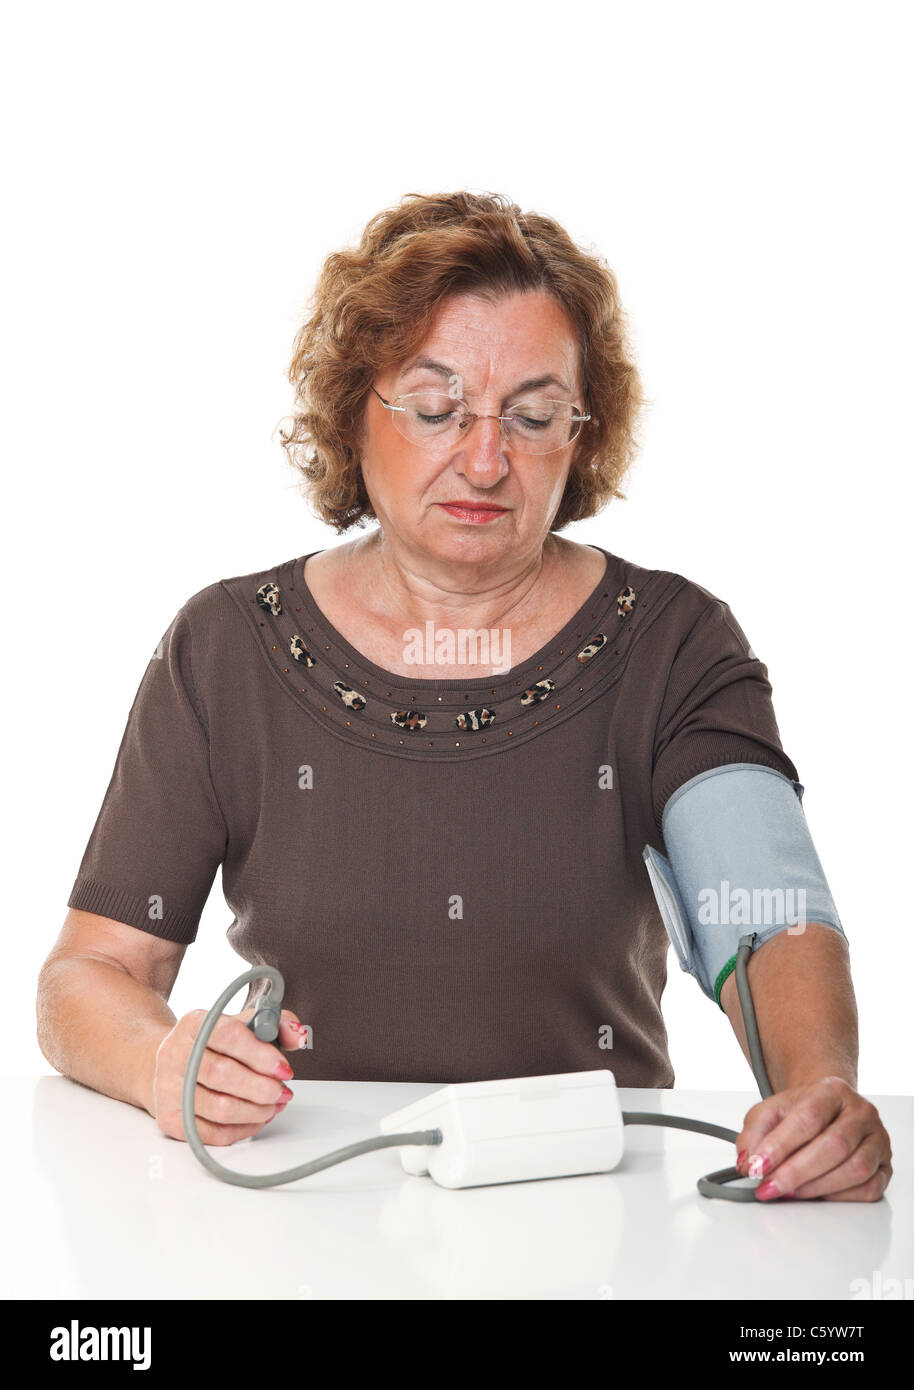 senior woman check her blodd pressure with machine Stock Photo